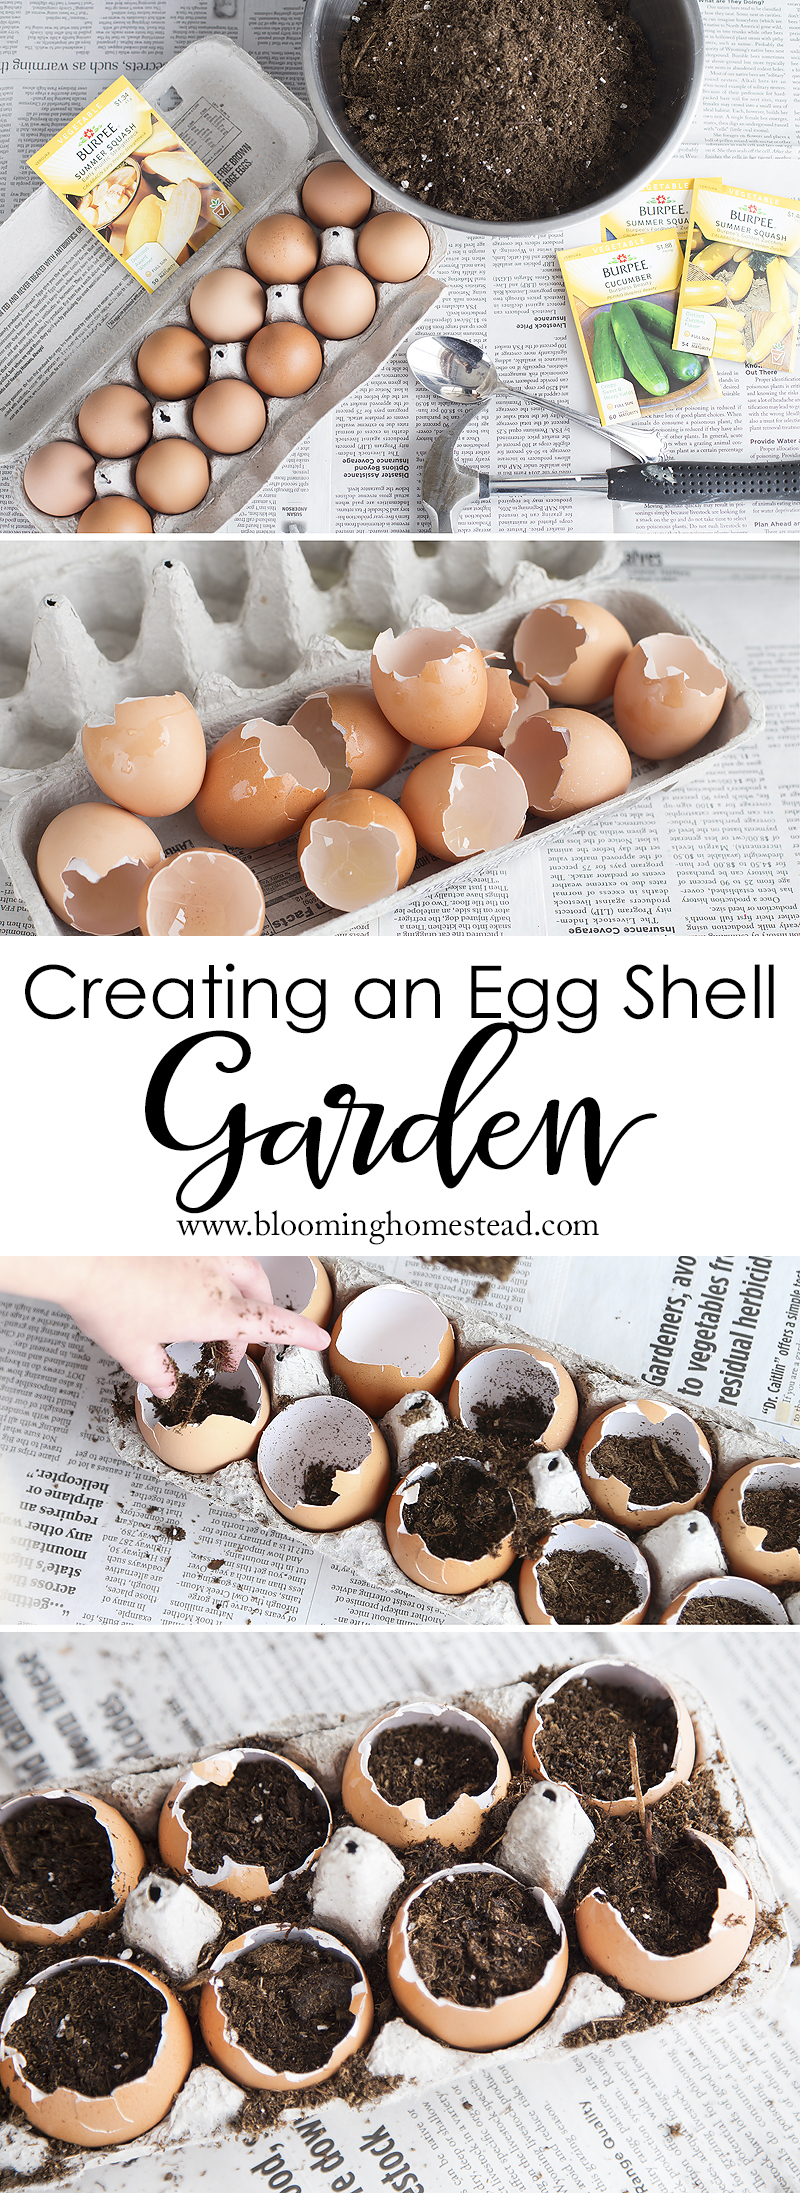 Easy to follow tutorial showing how to create an eggshell garden. Perfect for seed starting and the kids can help!